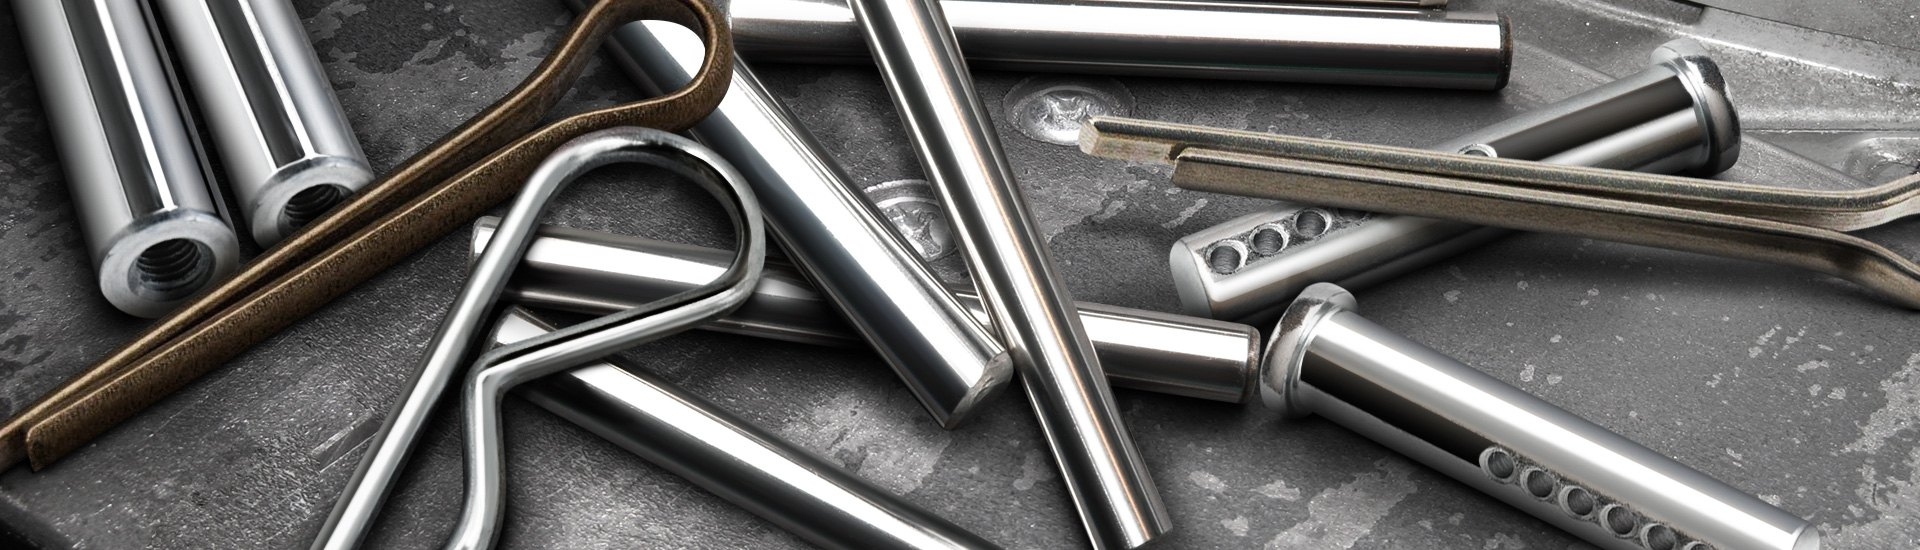 Pins | Safety, Cotter, Clevis, Hitch, Dowel Pins - TOOLSiD.com